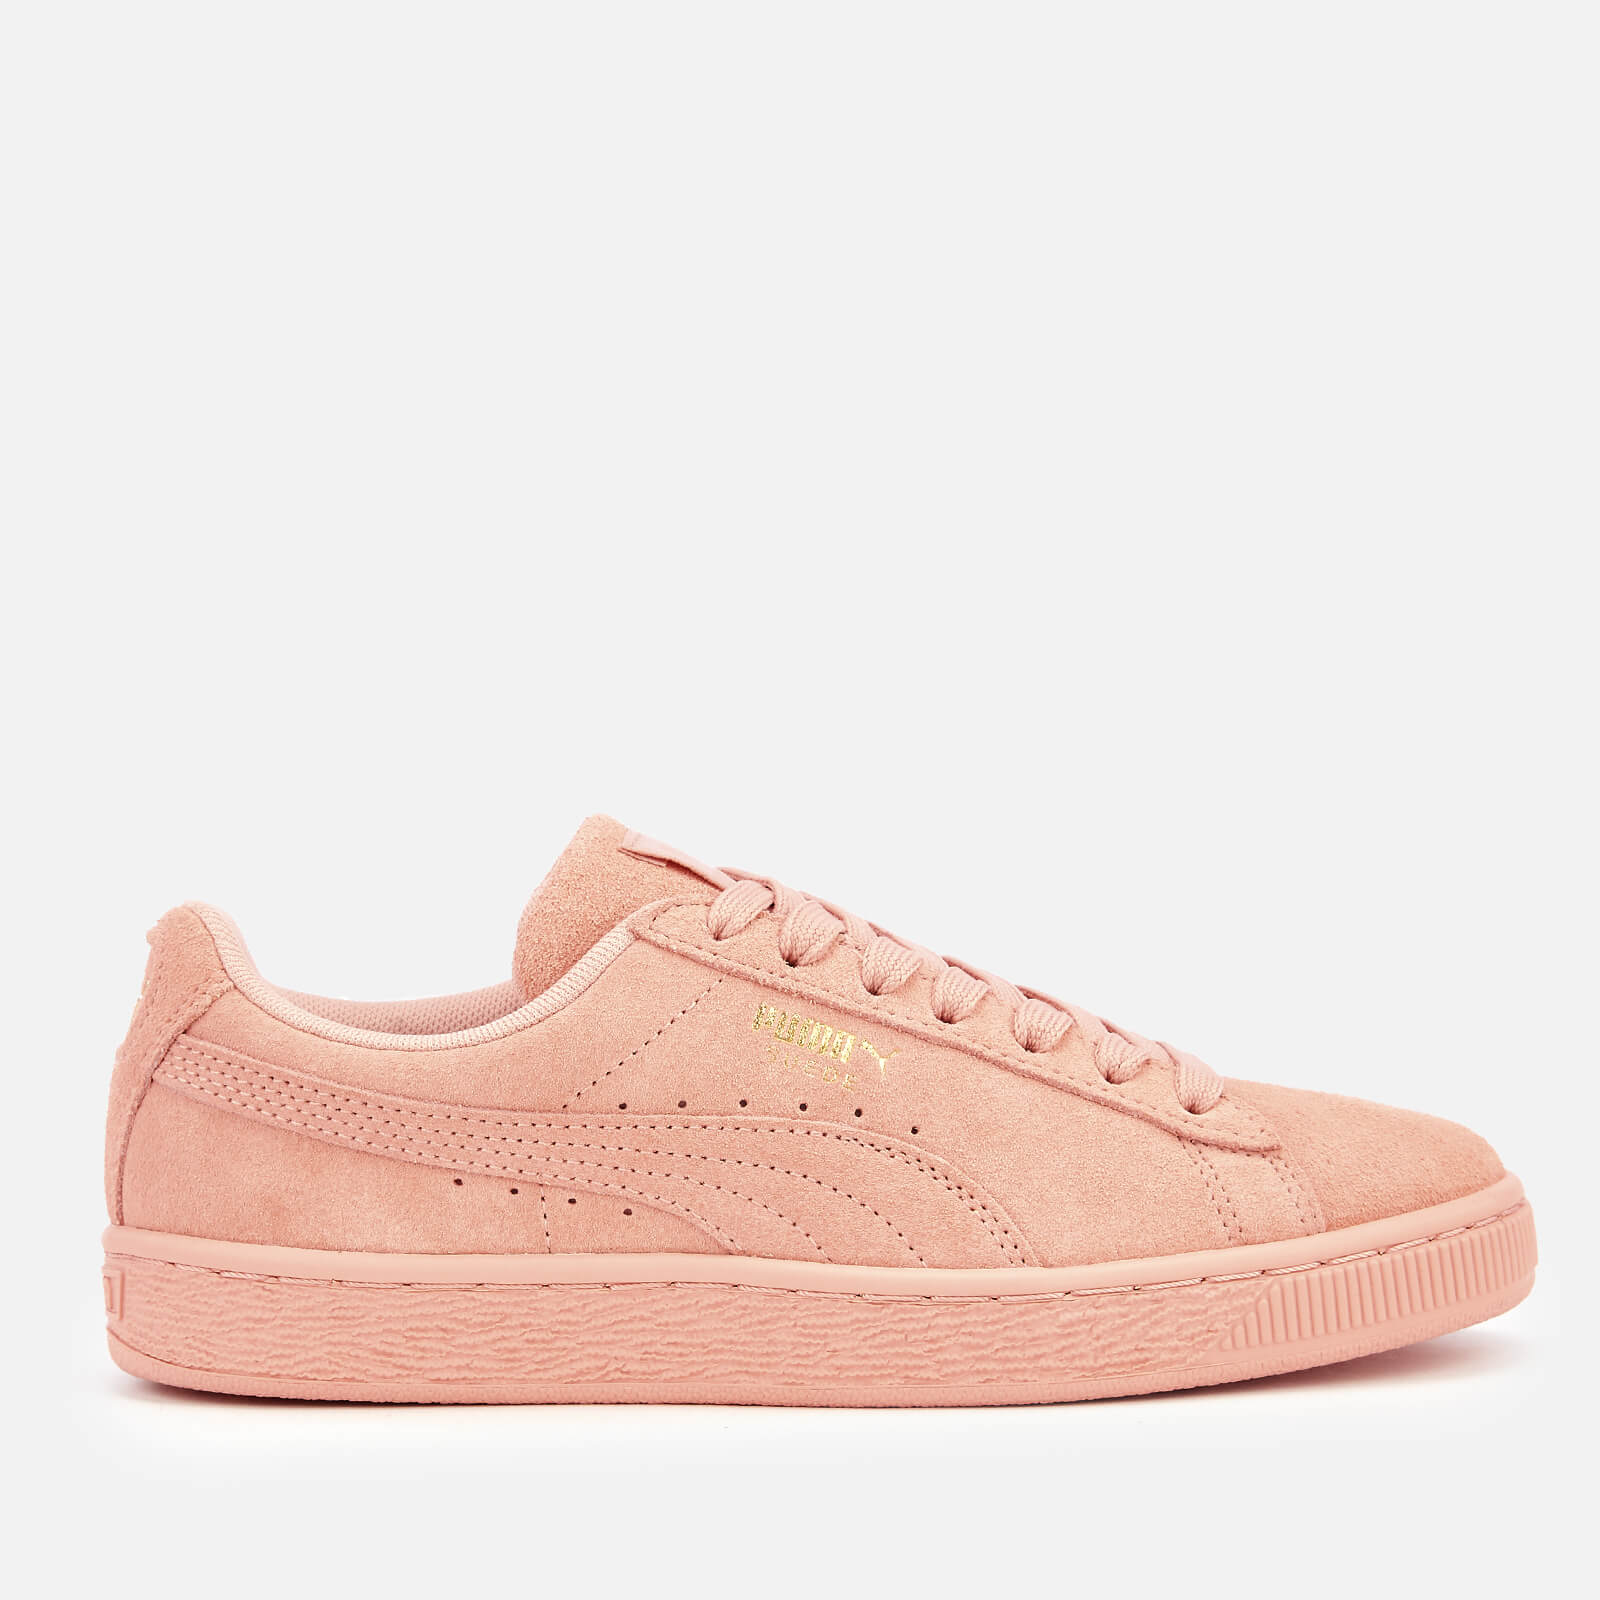 Puma Women's Suede Classic Trainers - Peach Bud/Puma Team Gold - UK 6 - Pink